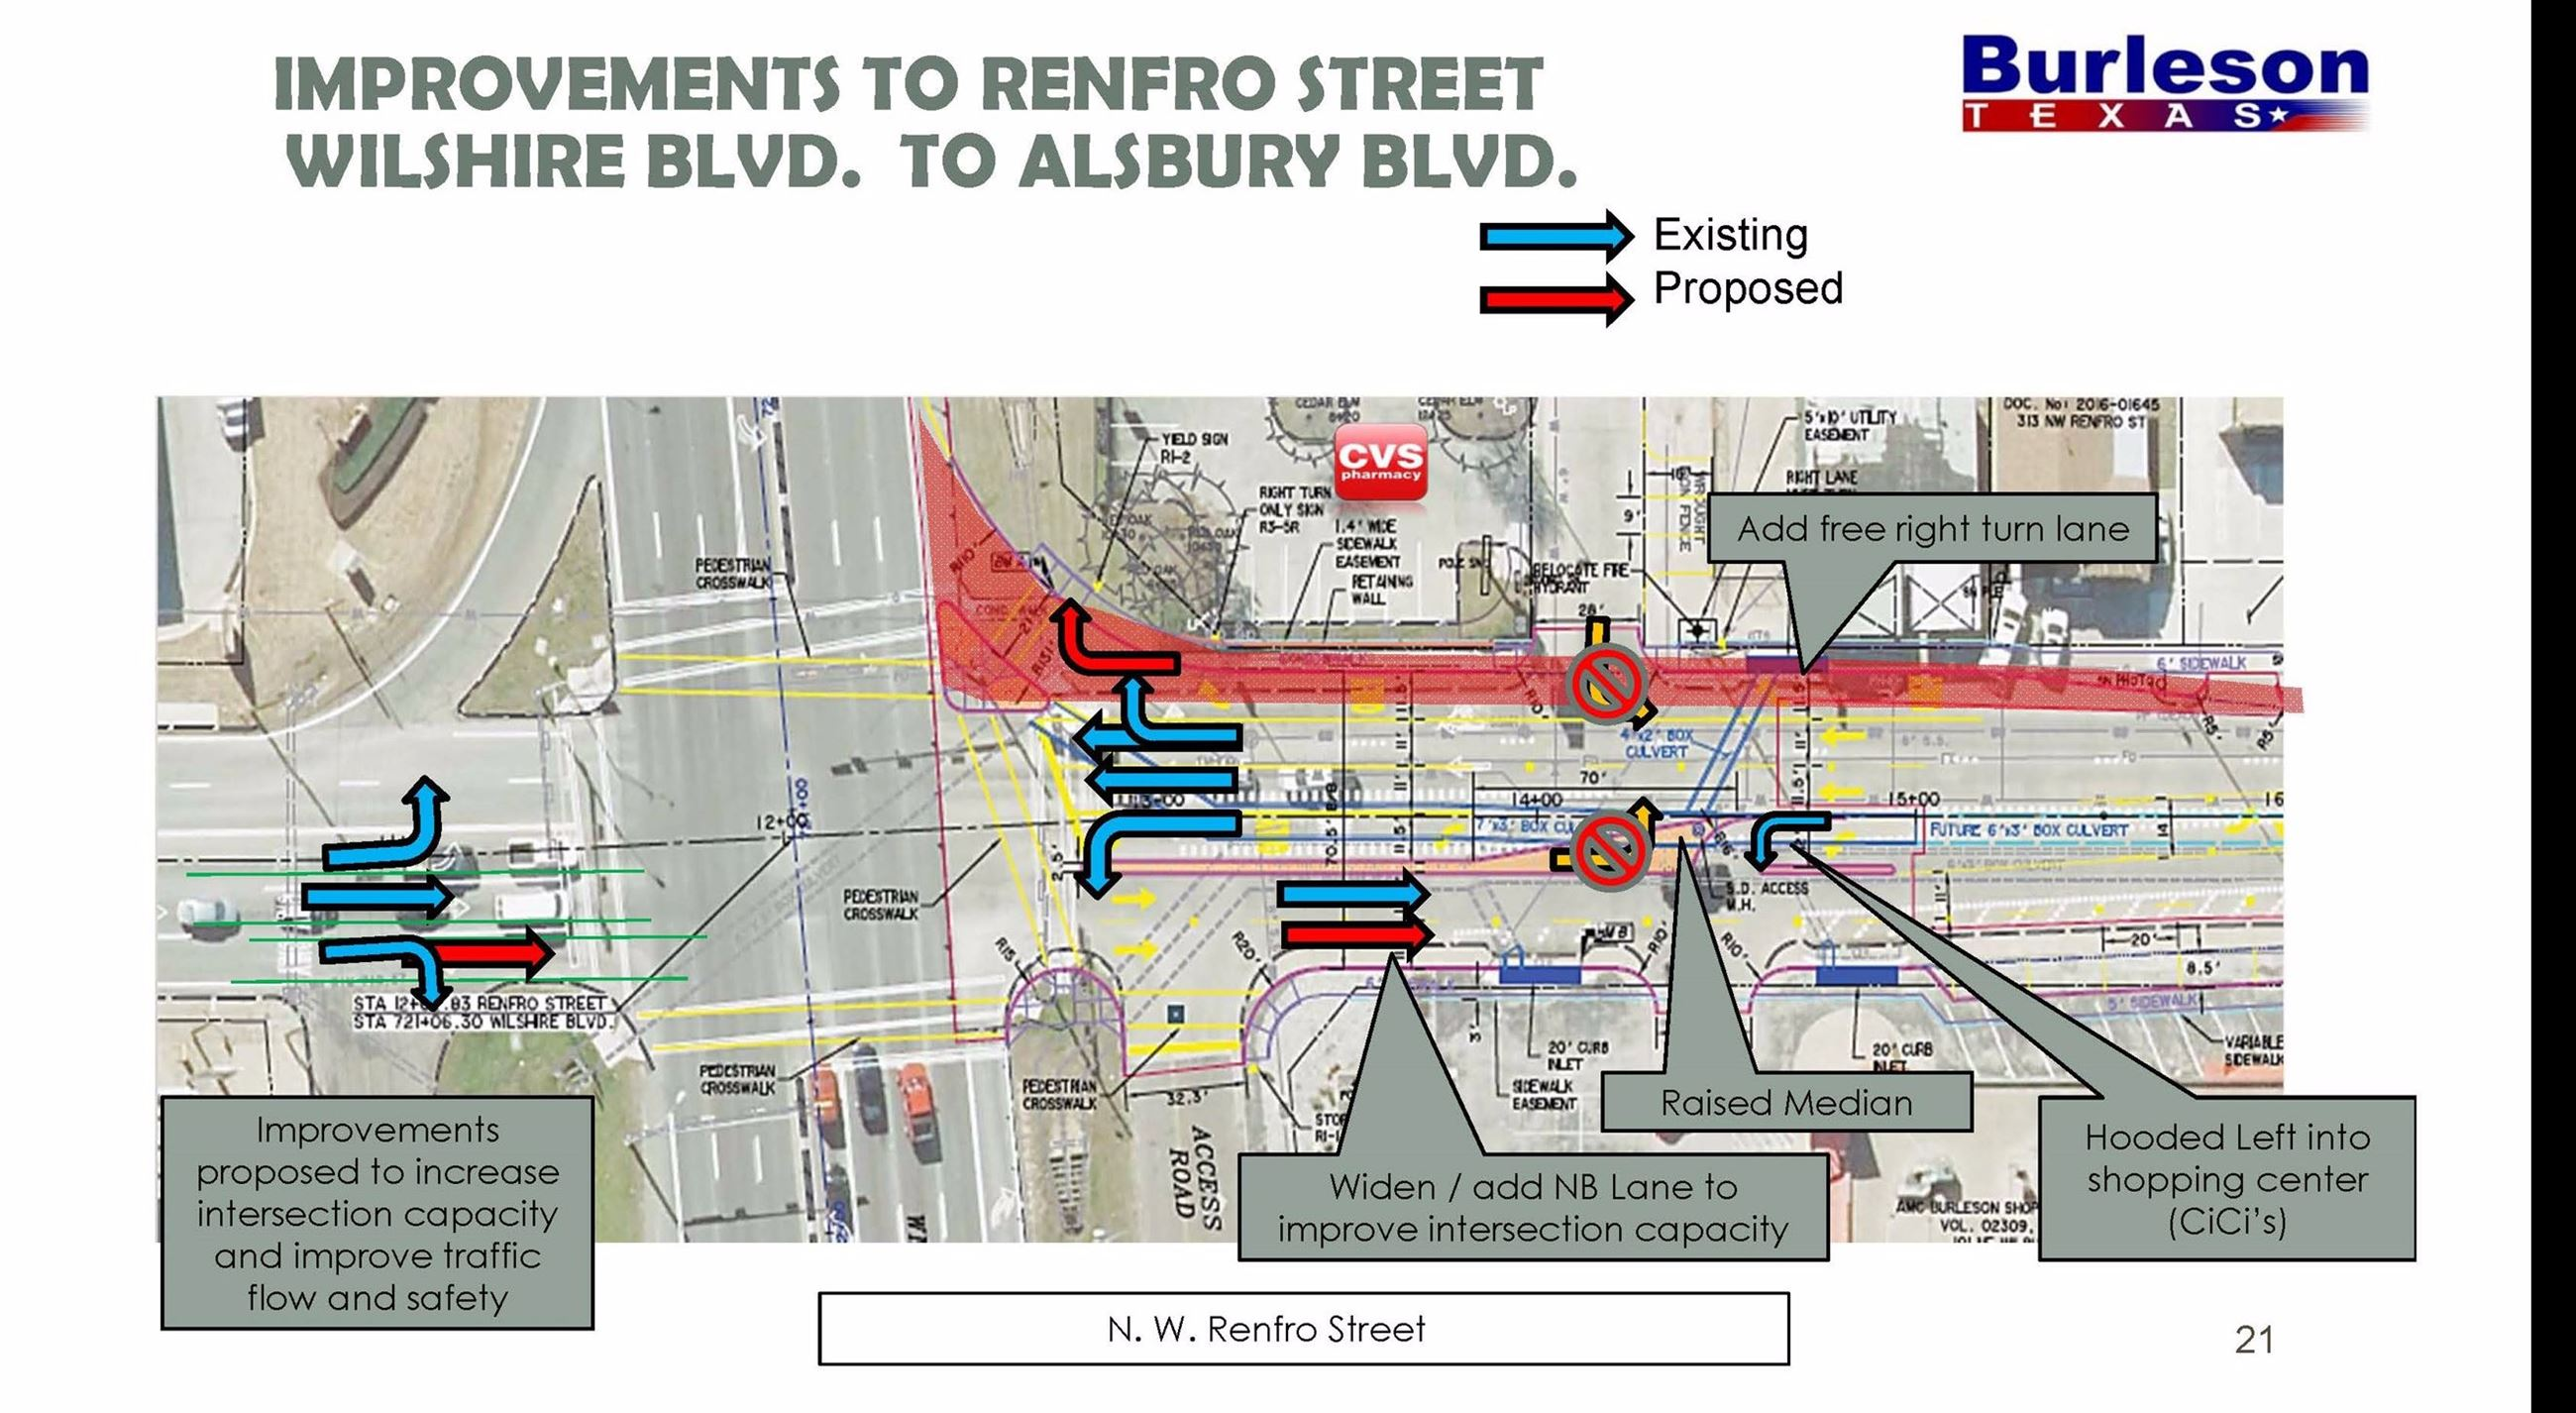 Renfro st improvments from 174 to alsbury map